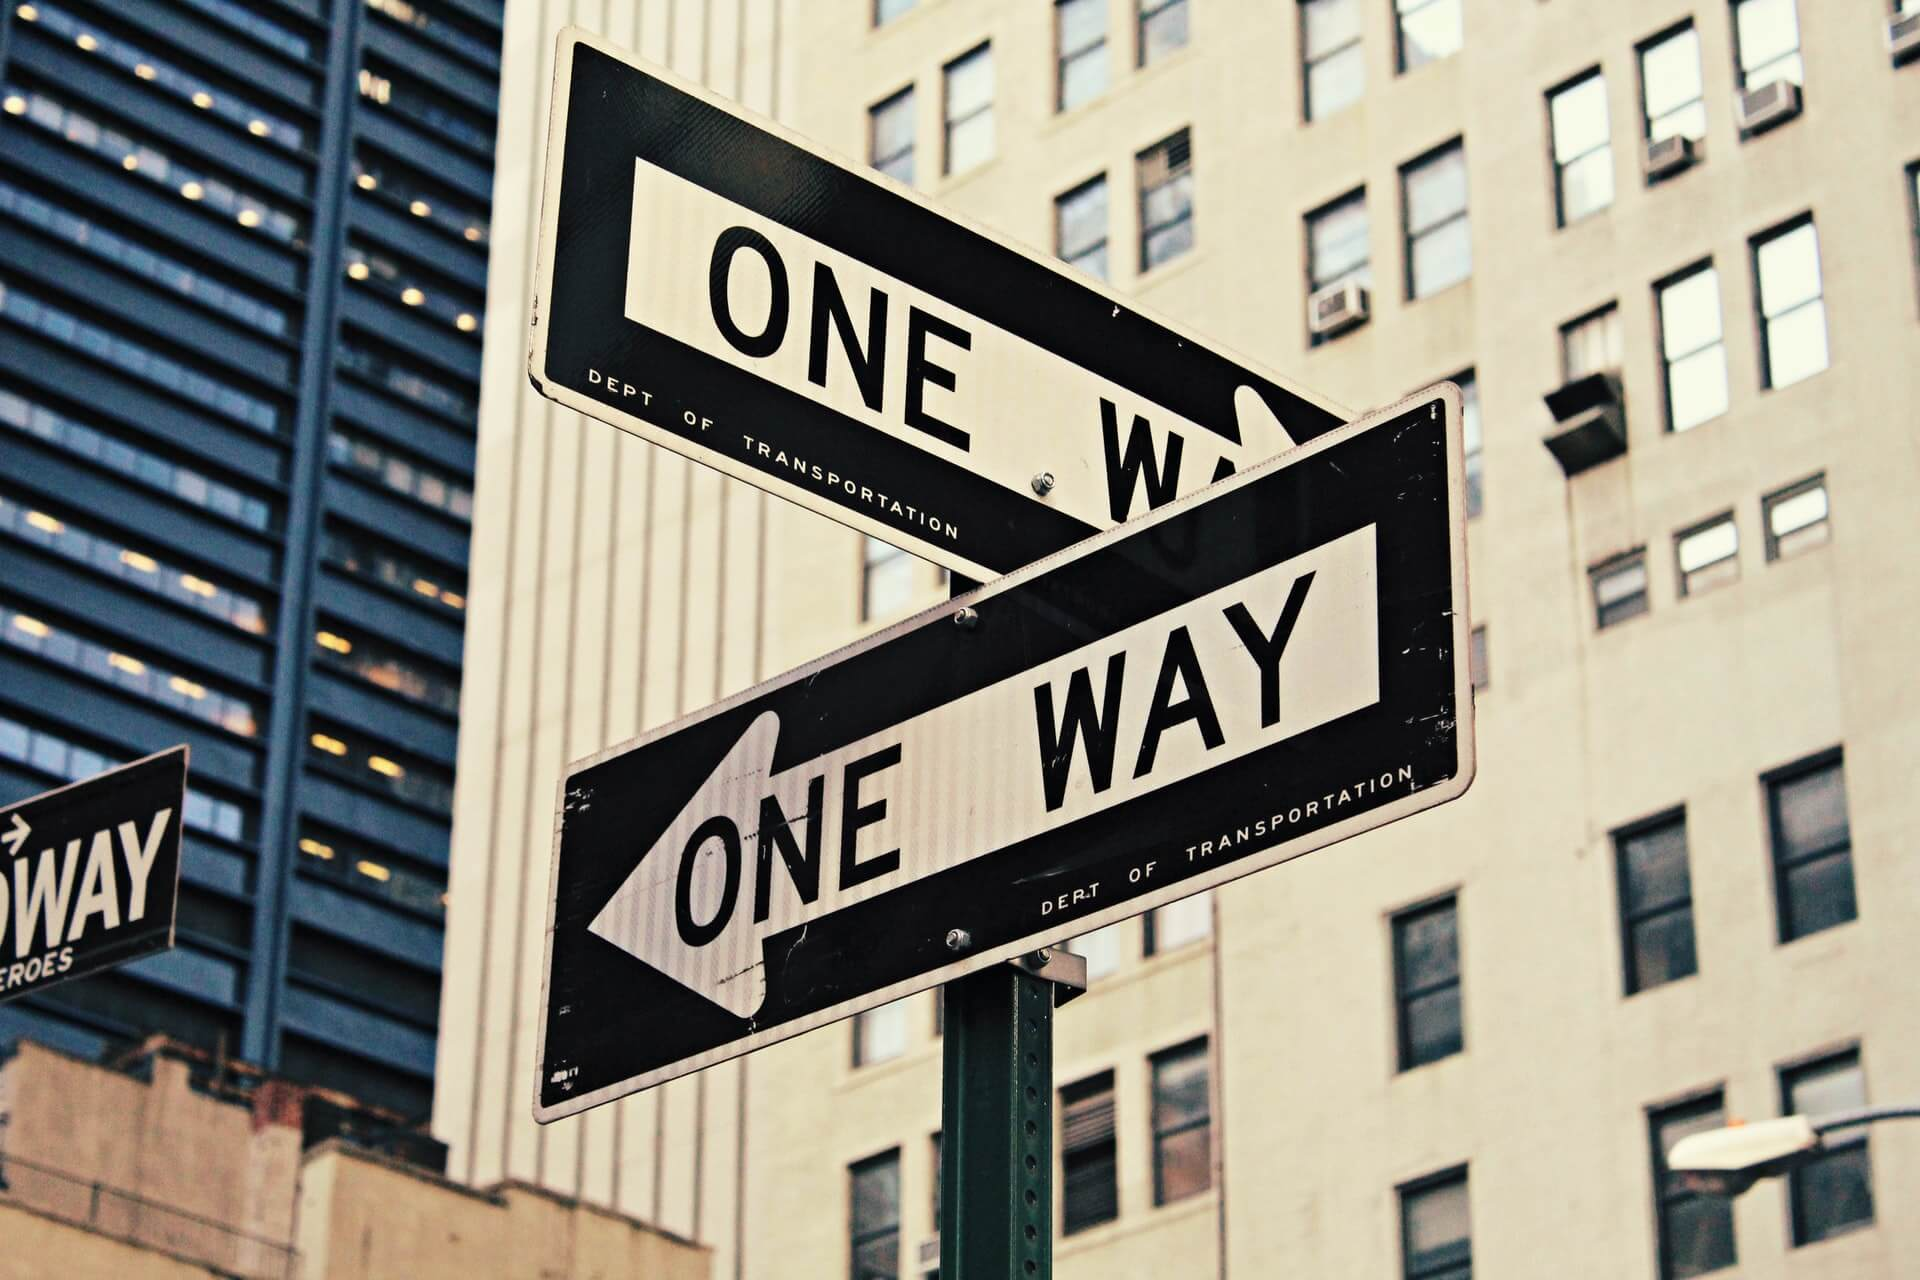 Street signs showing one way